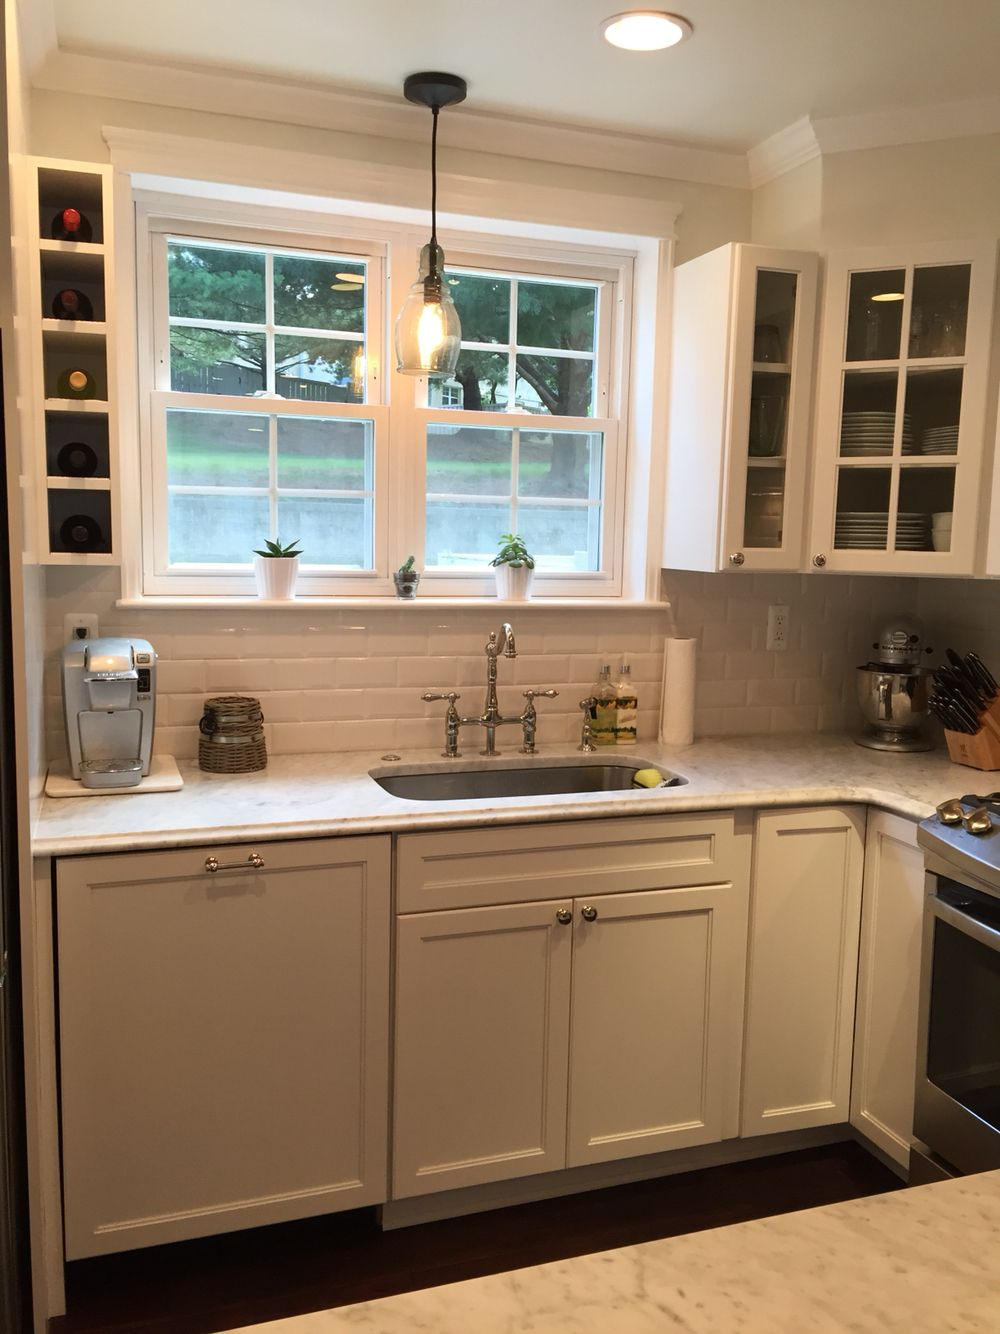 white kitchen with dishwasher panel kitchen new kitchen kitchen remodel on kitchen remodel not white id=73448